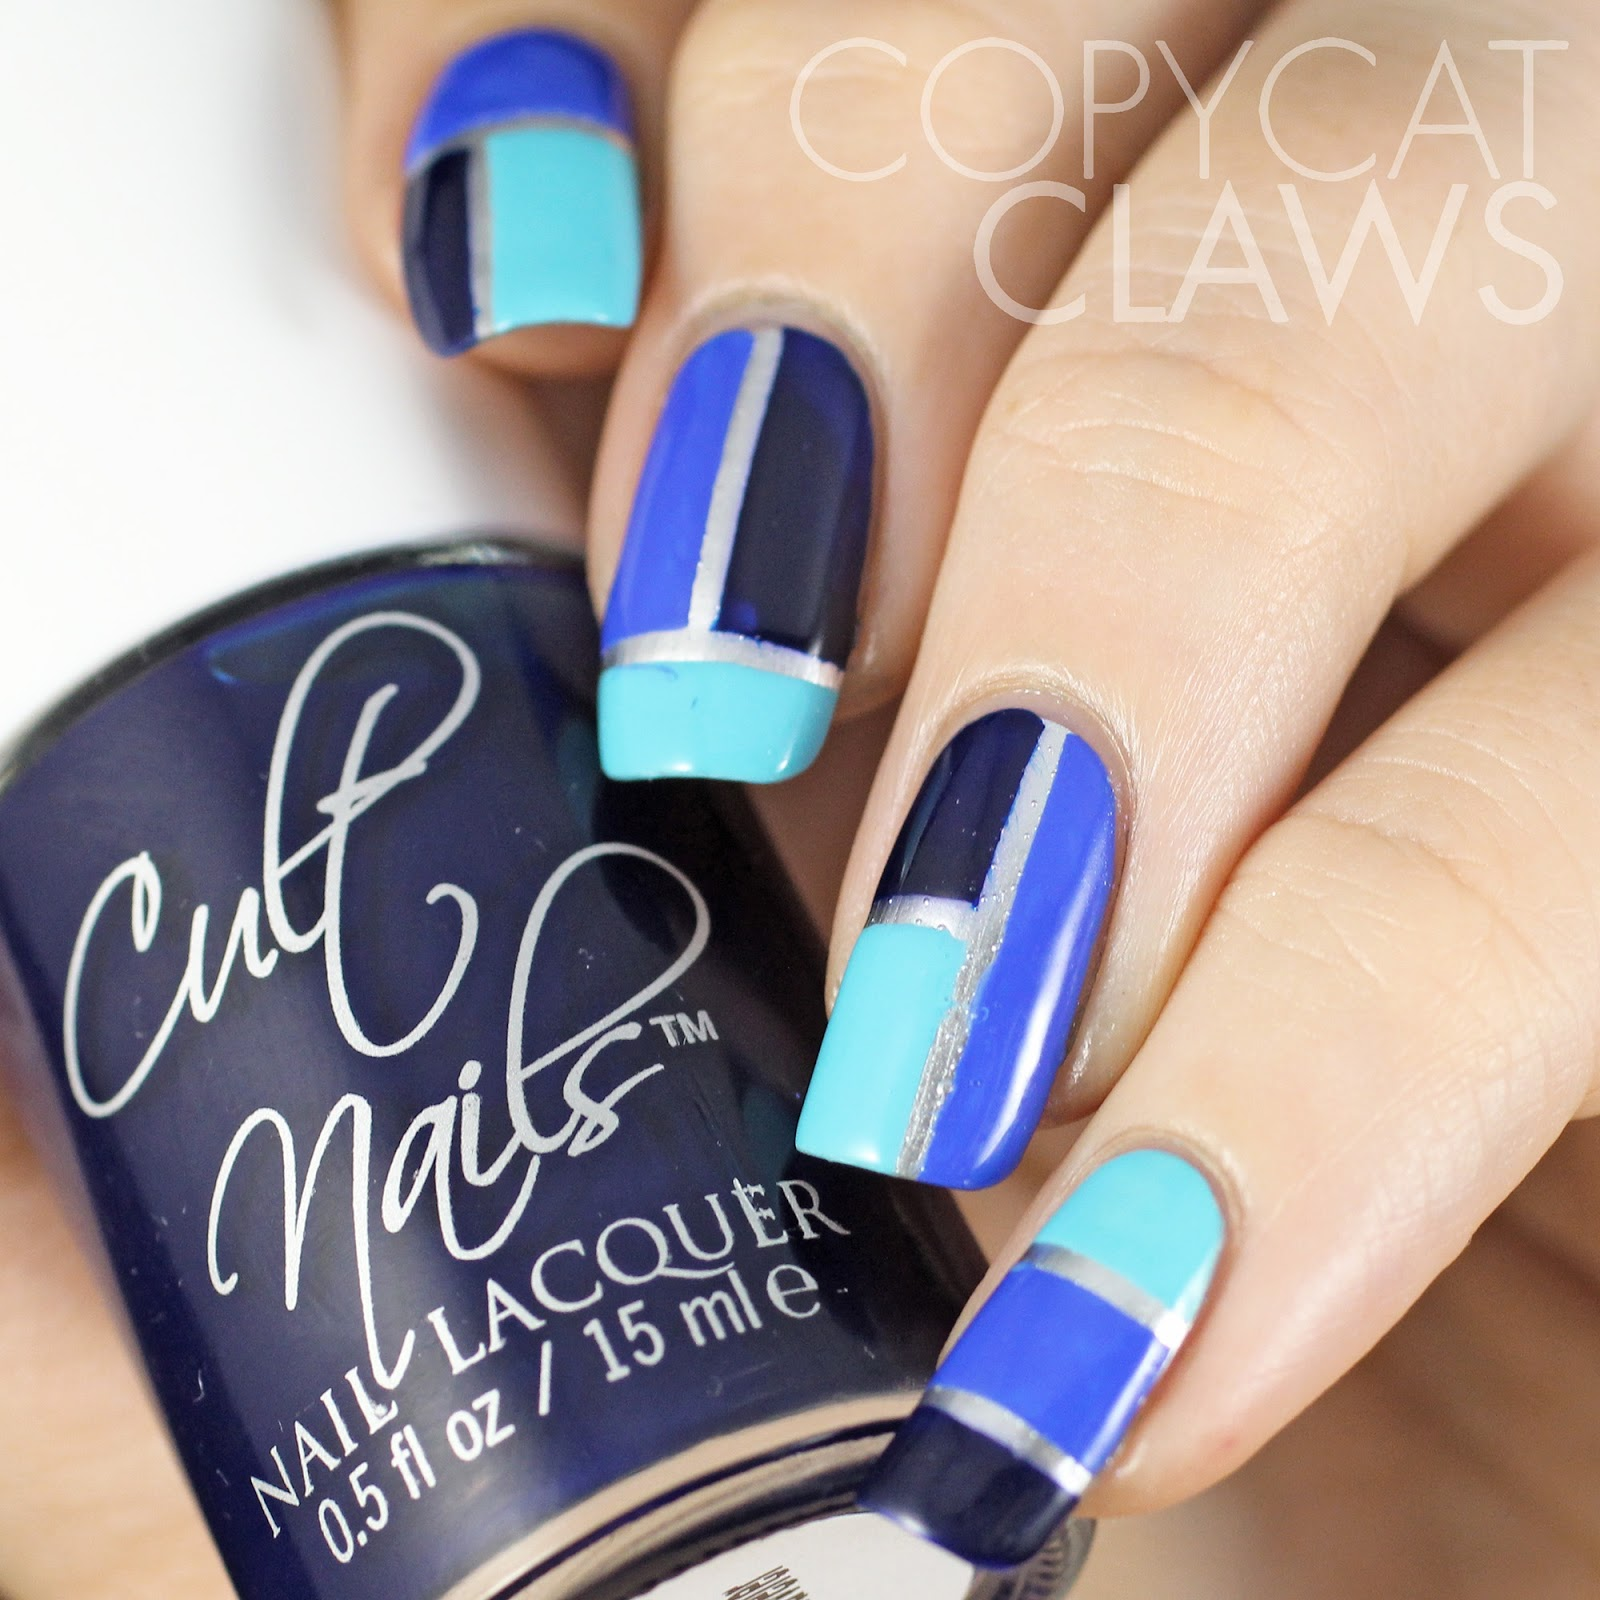 Copycat claws blue color block nail art i love blue its that simple and ive never really done color block nail art before so i thought id give it a go here prinsesfo Choice Image